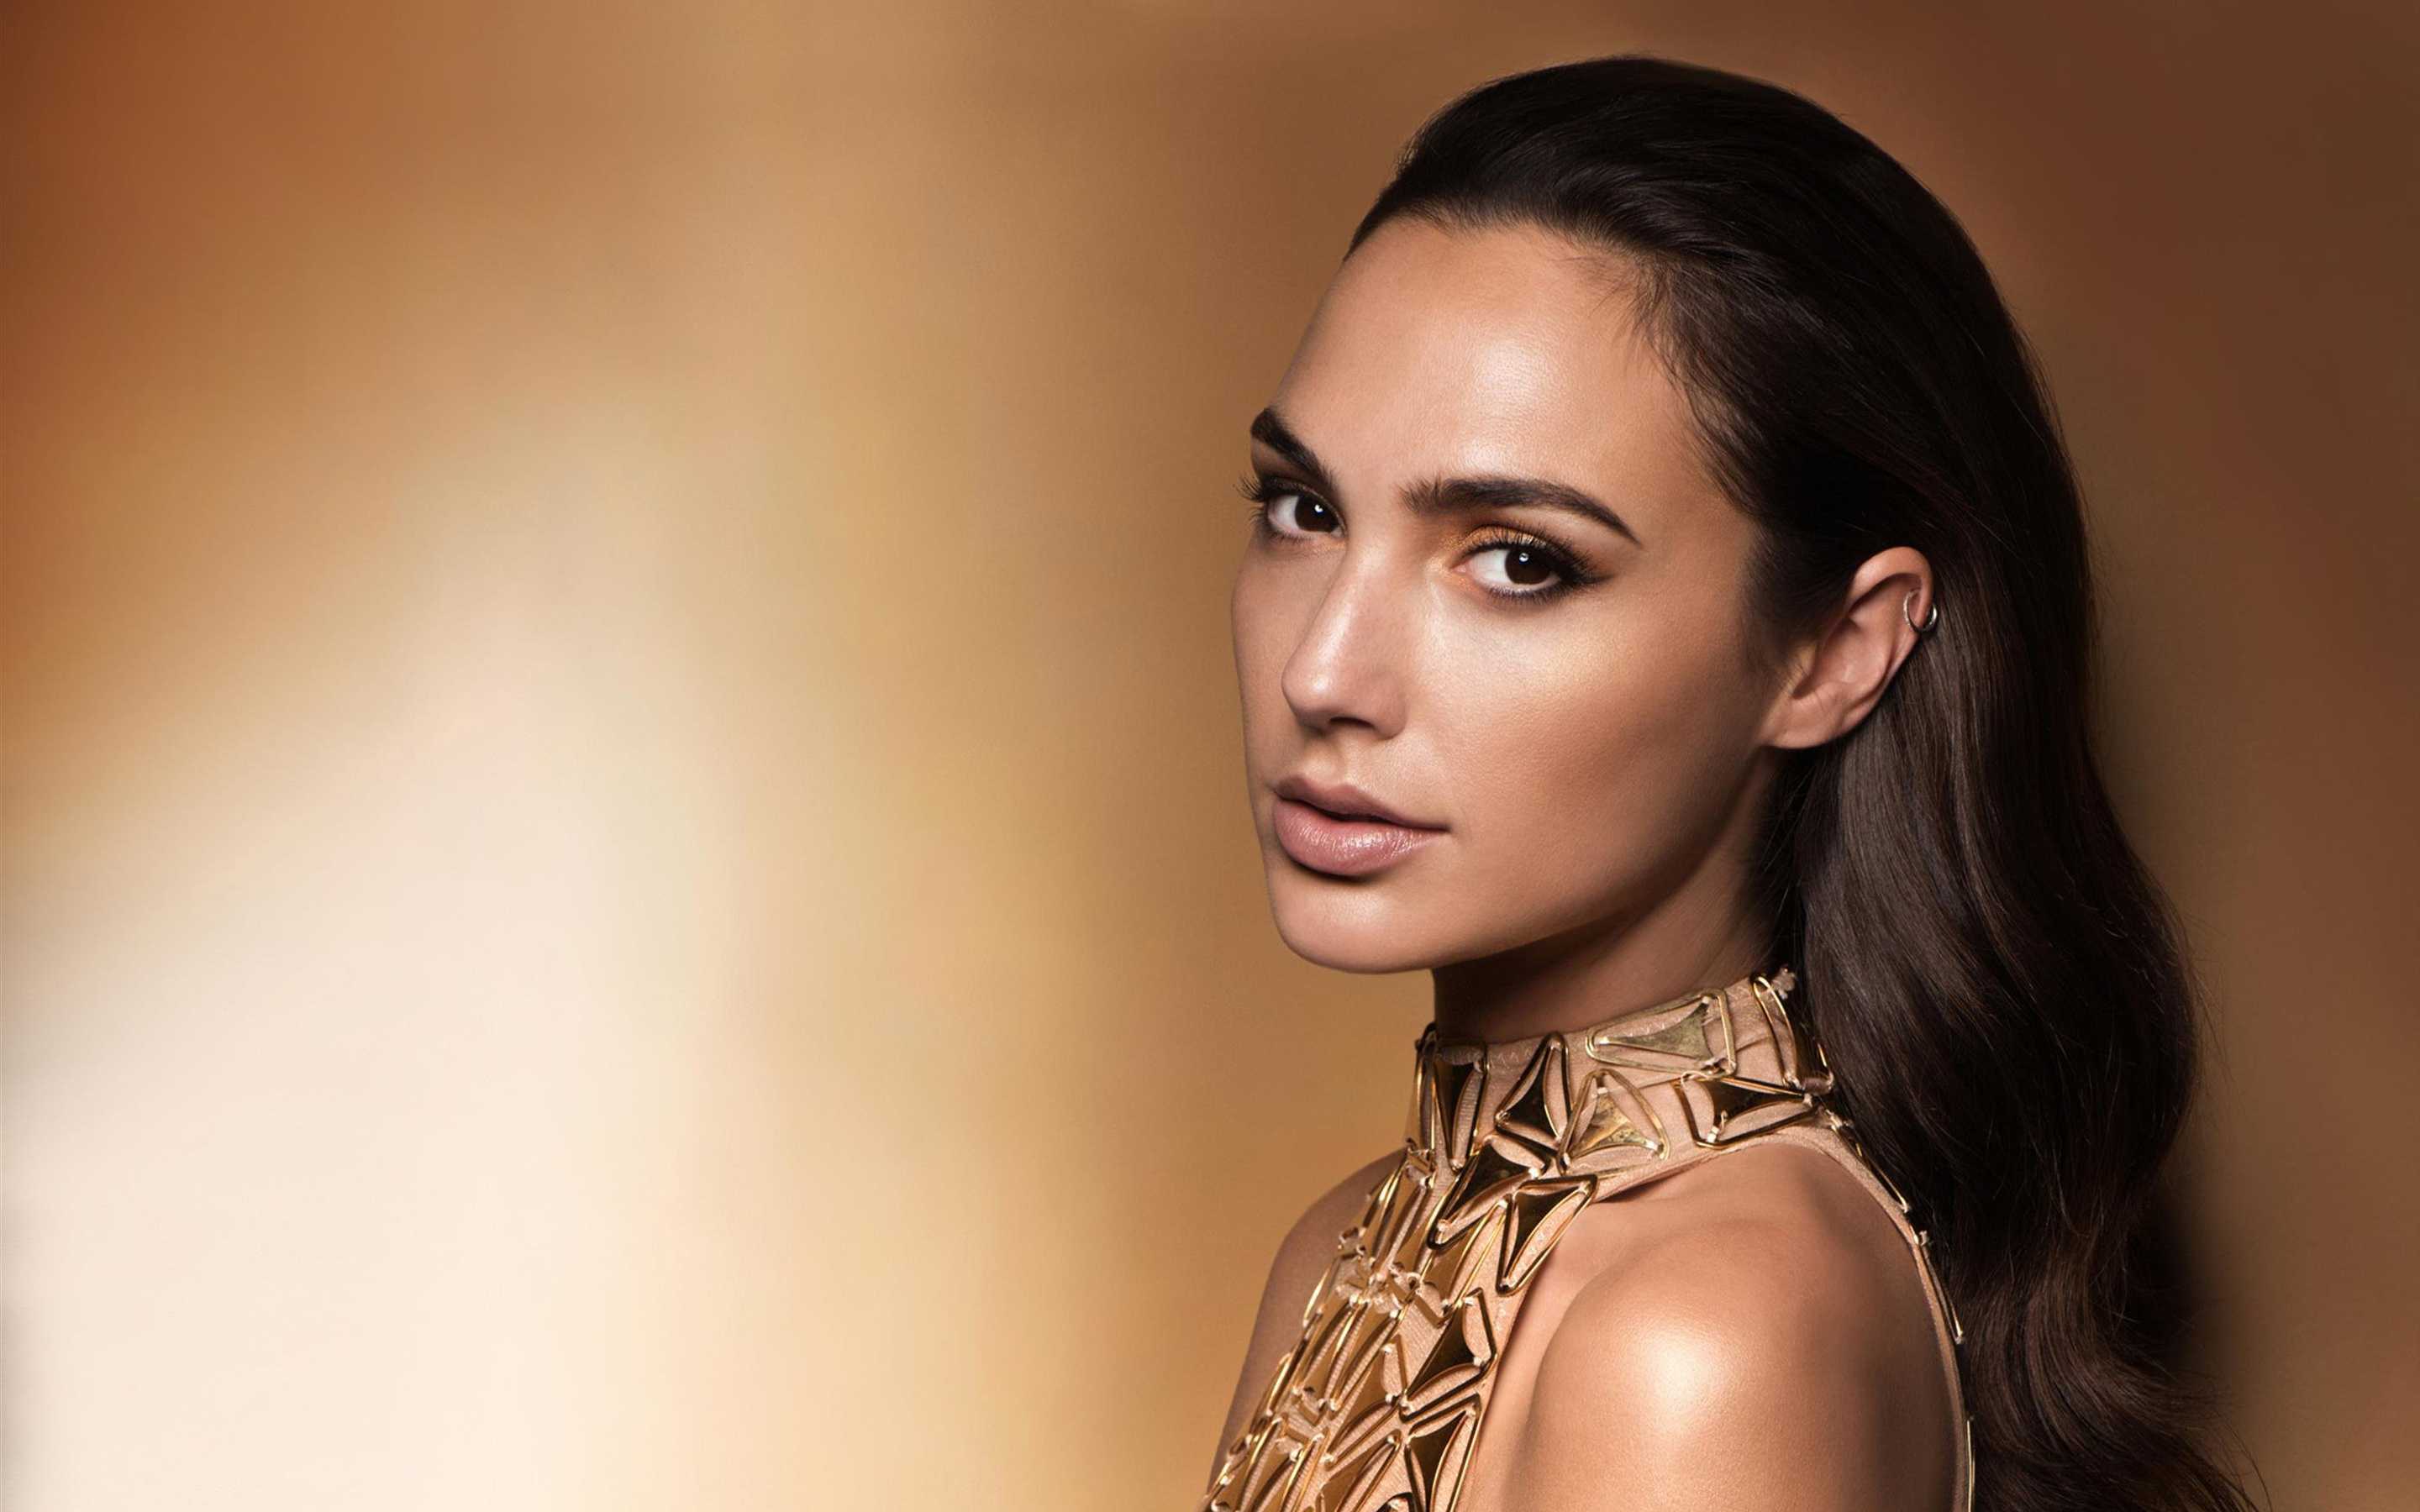 Gal gadot full hd wallpaper and background image 2880x1800 id837777 celebrity gal gadot actress brown eyes brunette necklace wallpaper voltagebd Gallery